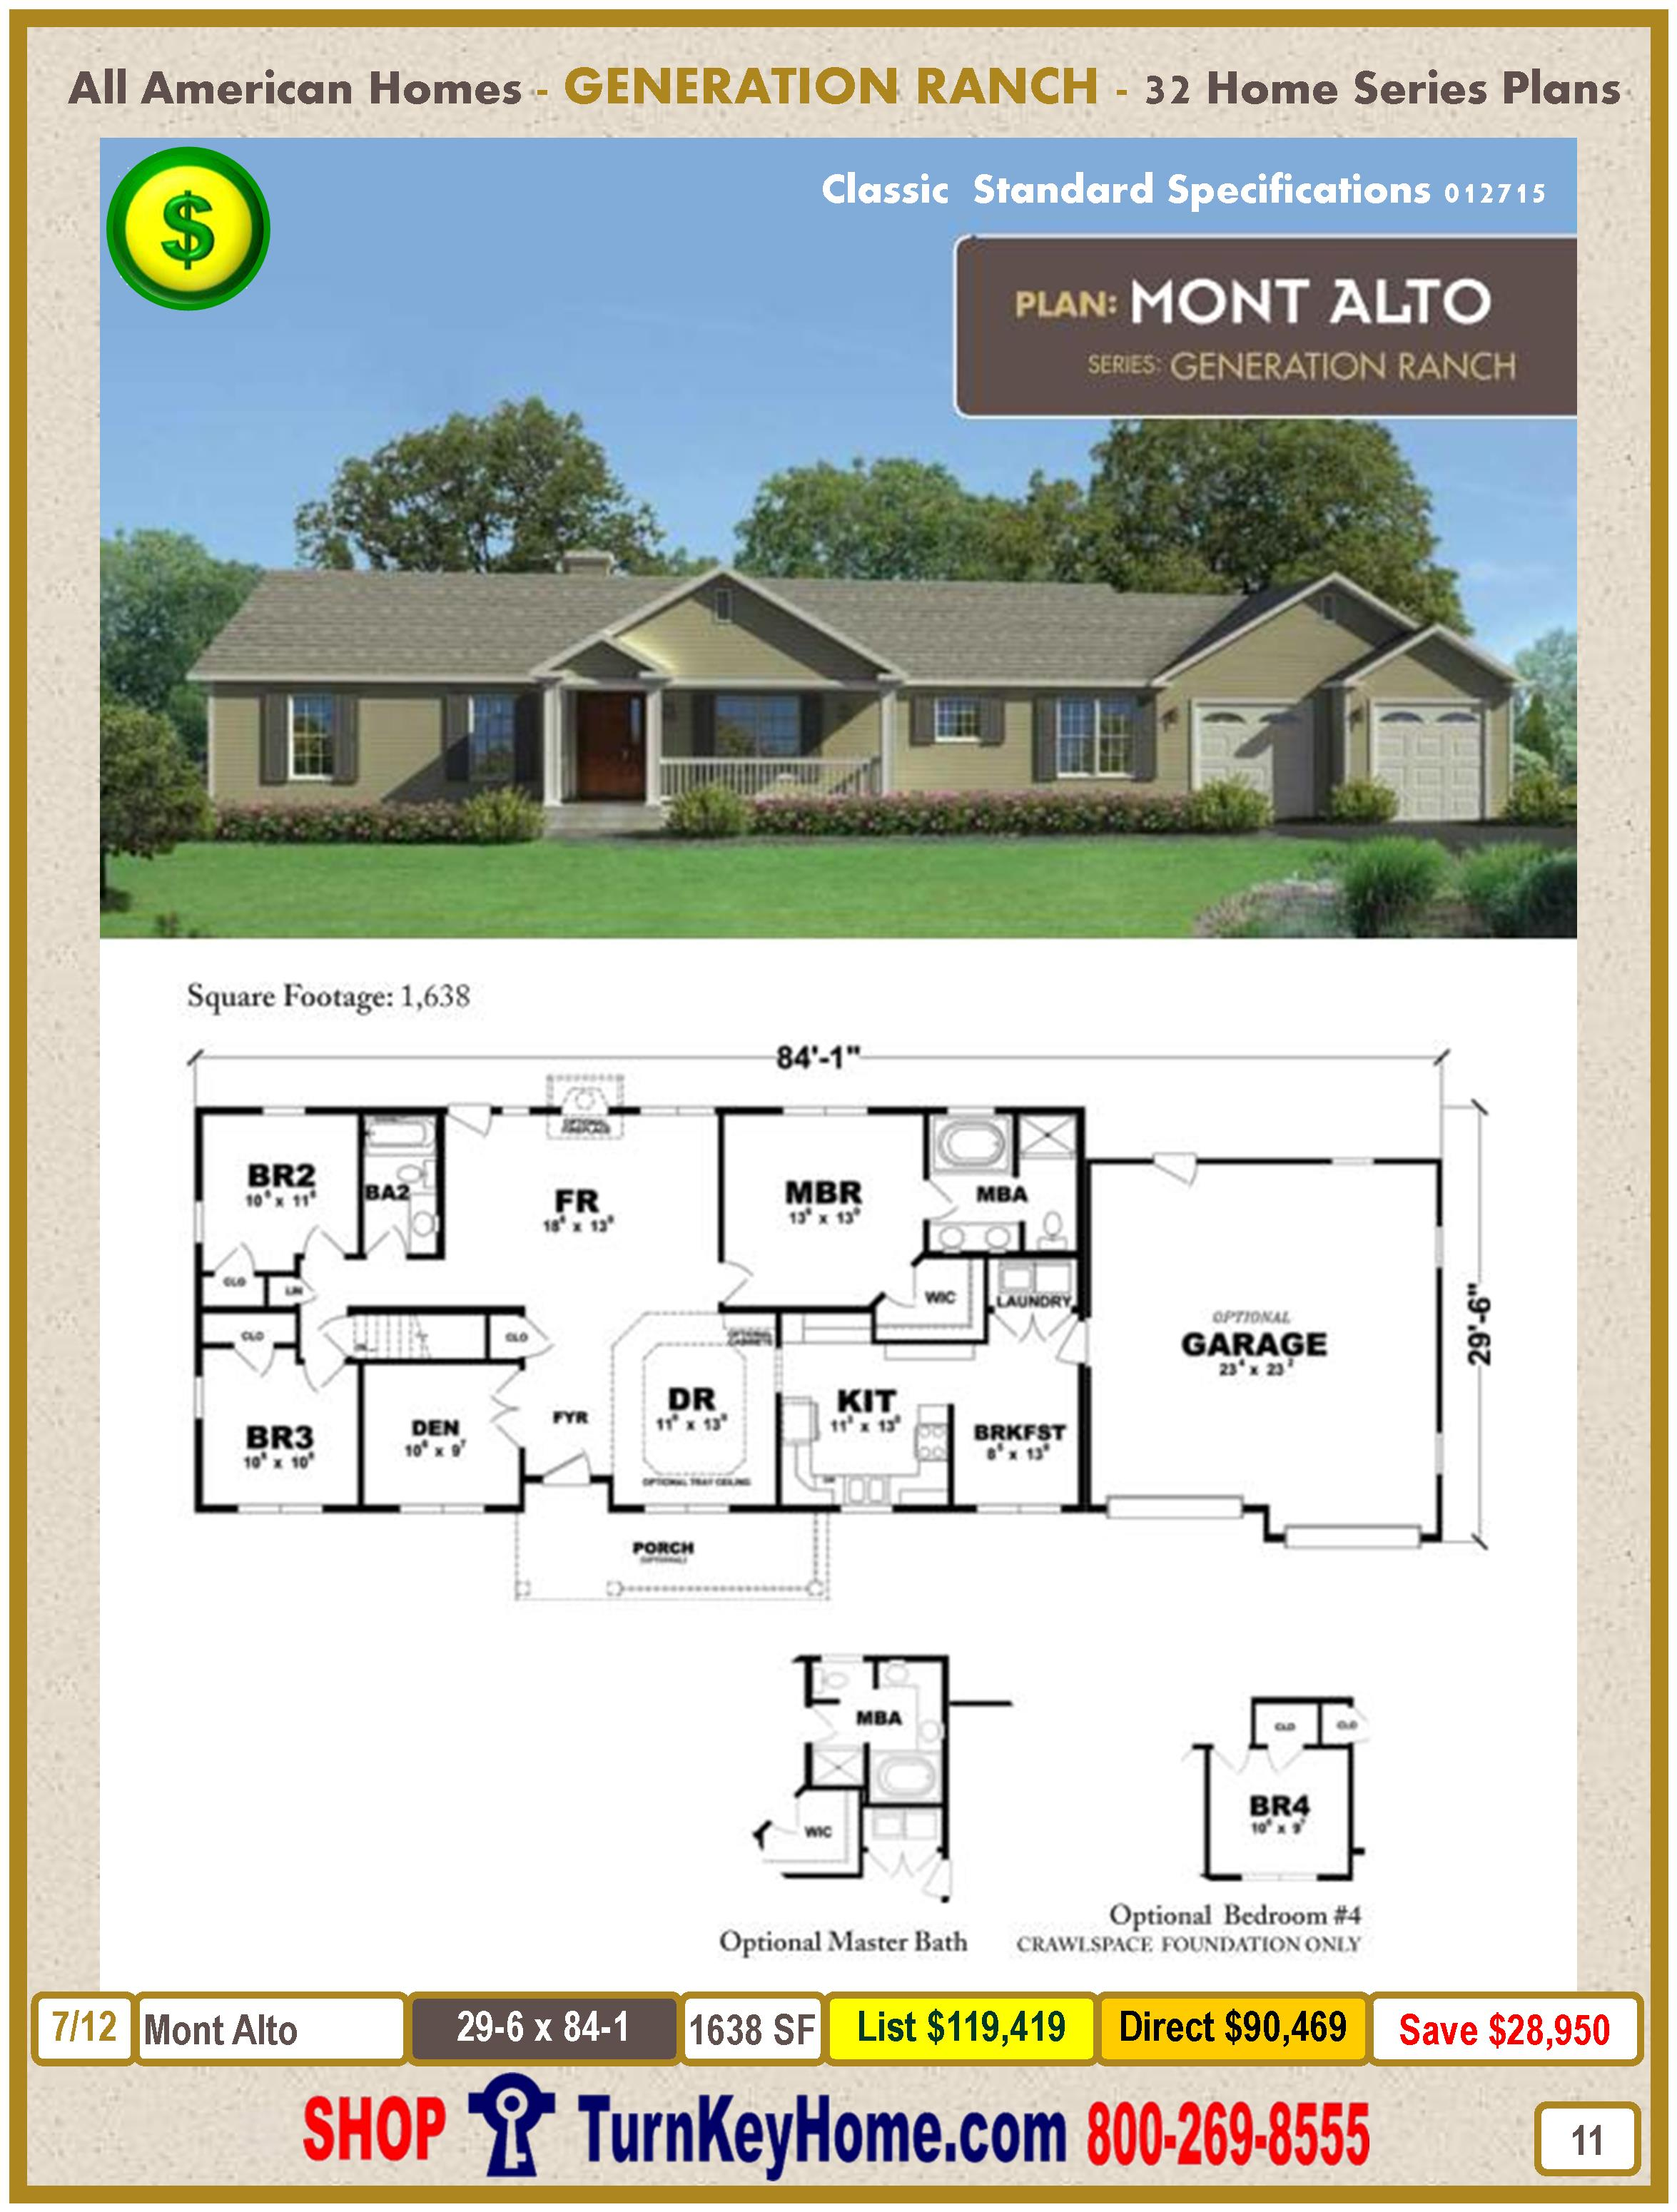 Modular.All.American.Homes.Generation.Ranch.Home.Series.Catalog.Page.11.Mont.Alto.Direct.Price.021415